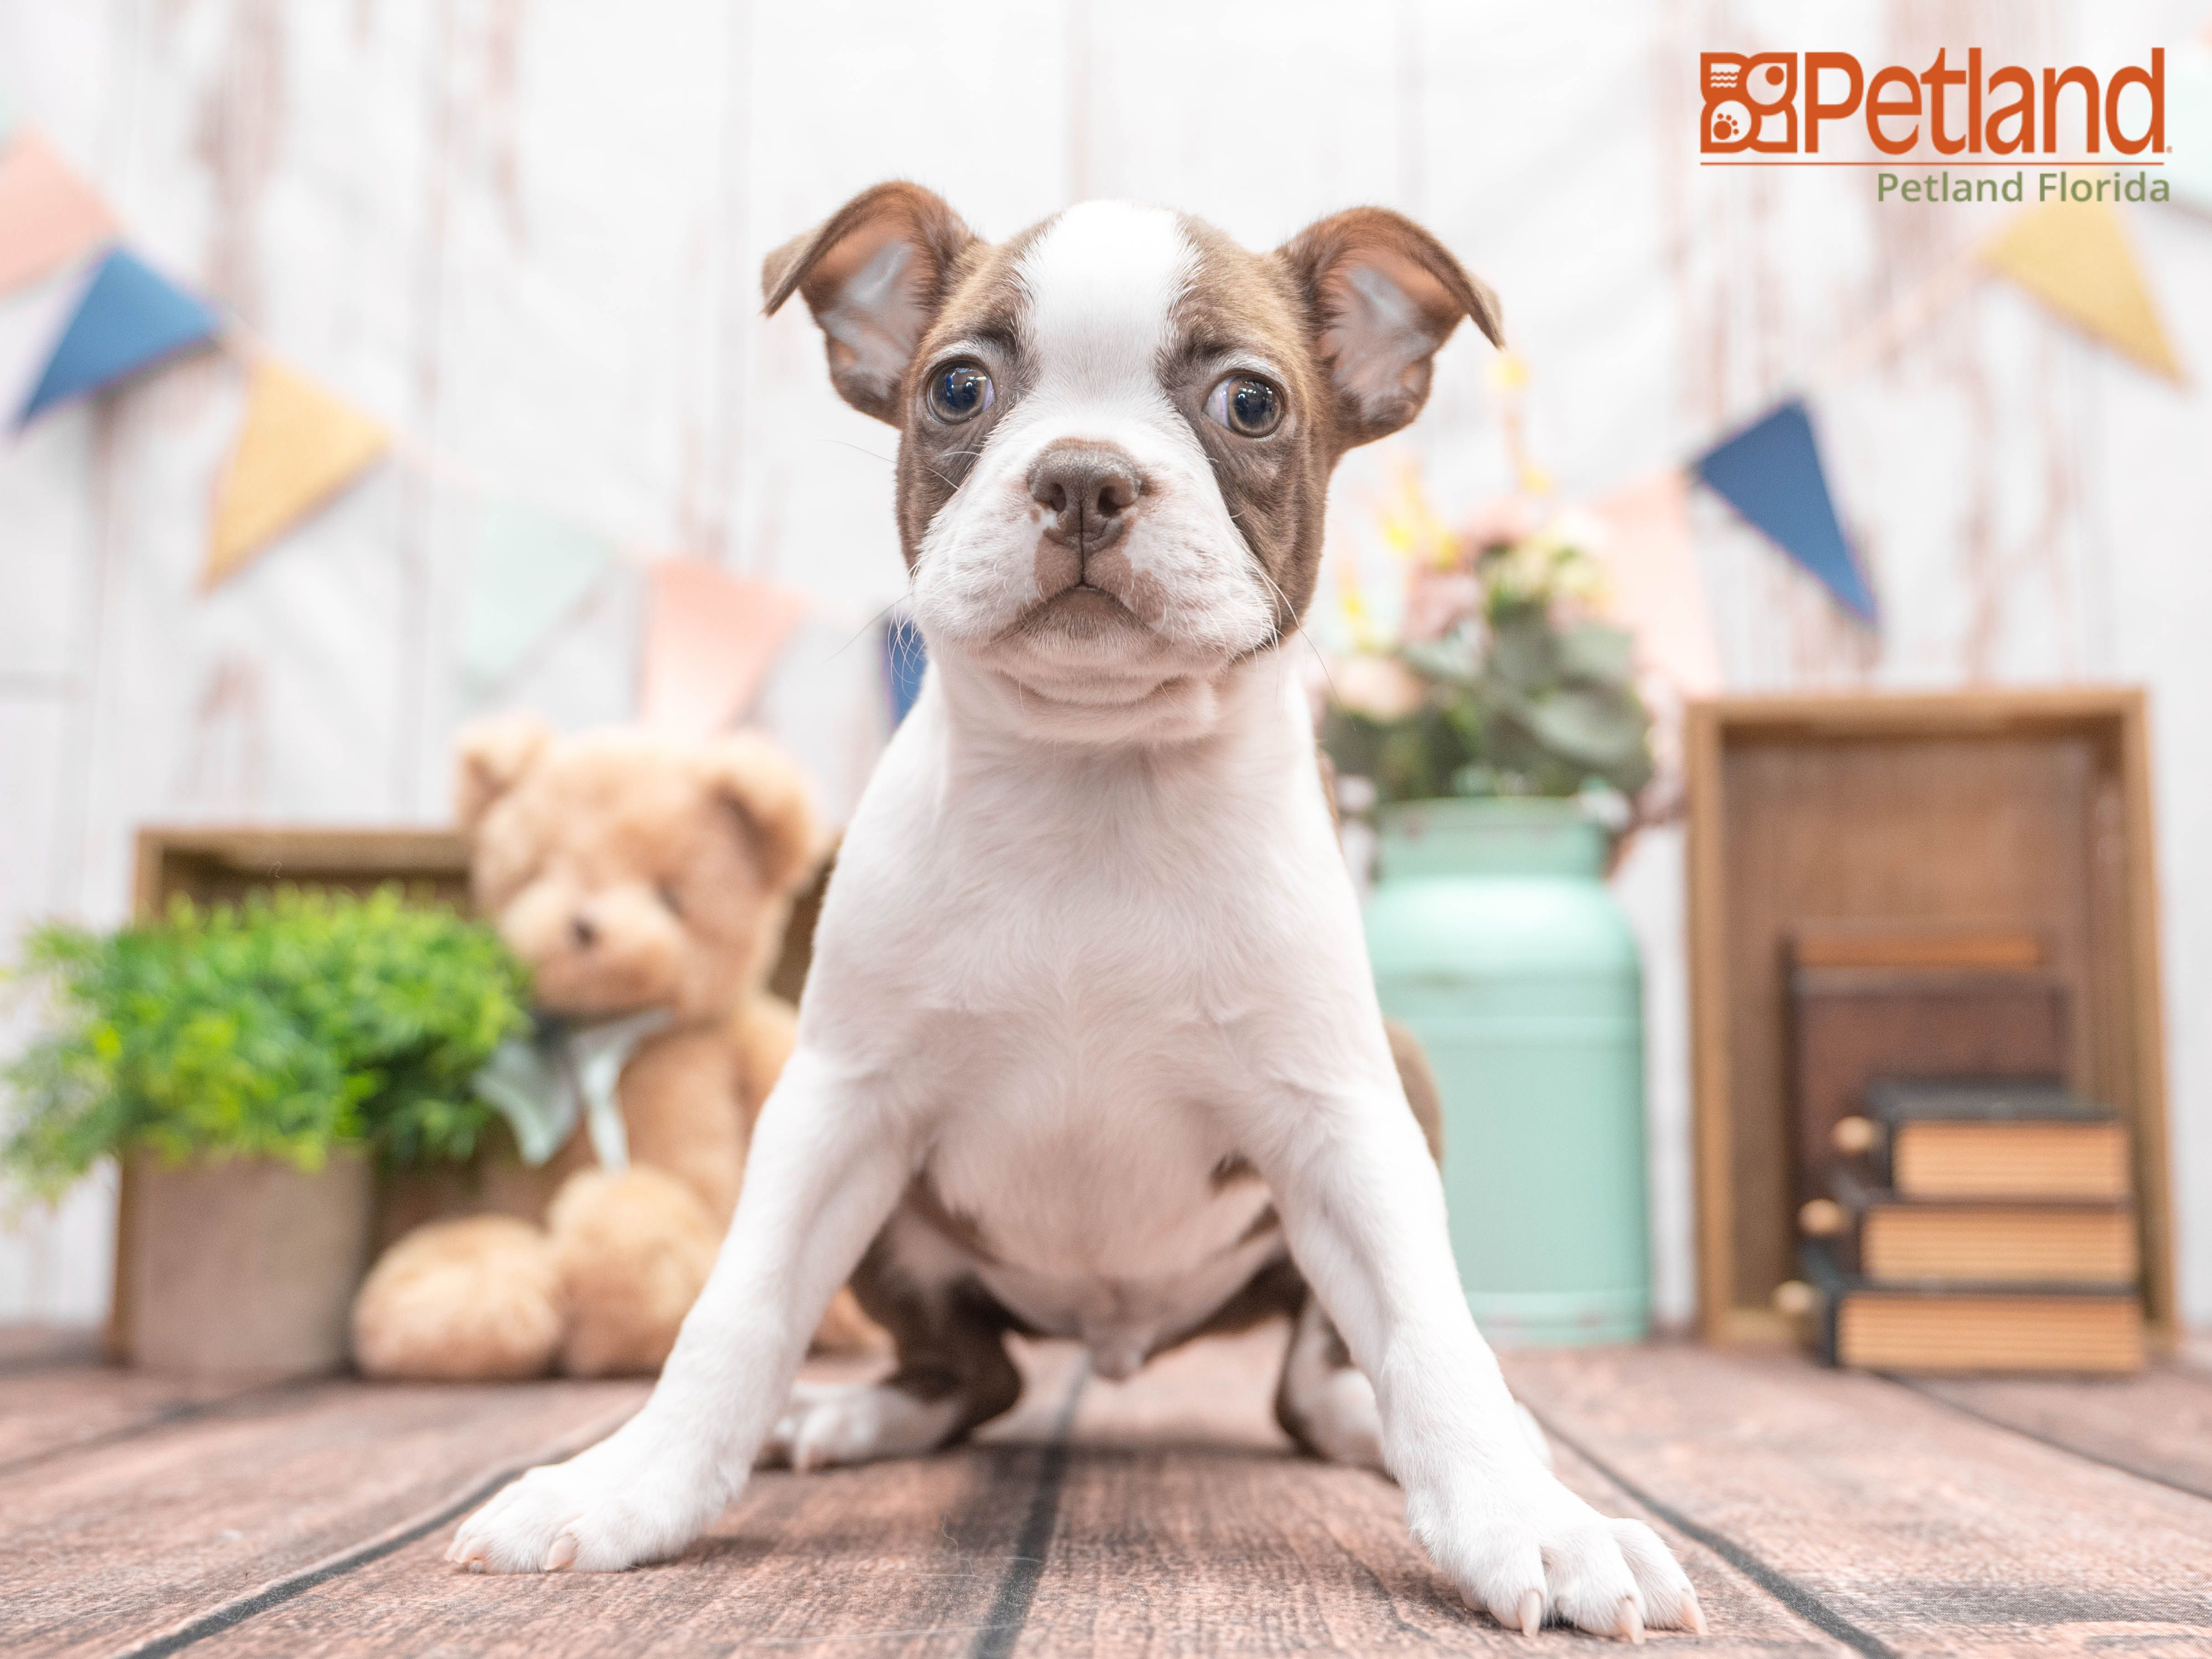 Petland Florida Has Boston Terrier Puppies For Sale Check Out All Our Available Puppies Bostonterrier Puppy D In 2020 Puppy Friends Boston Terrier Puppy Puppies